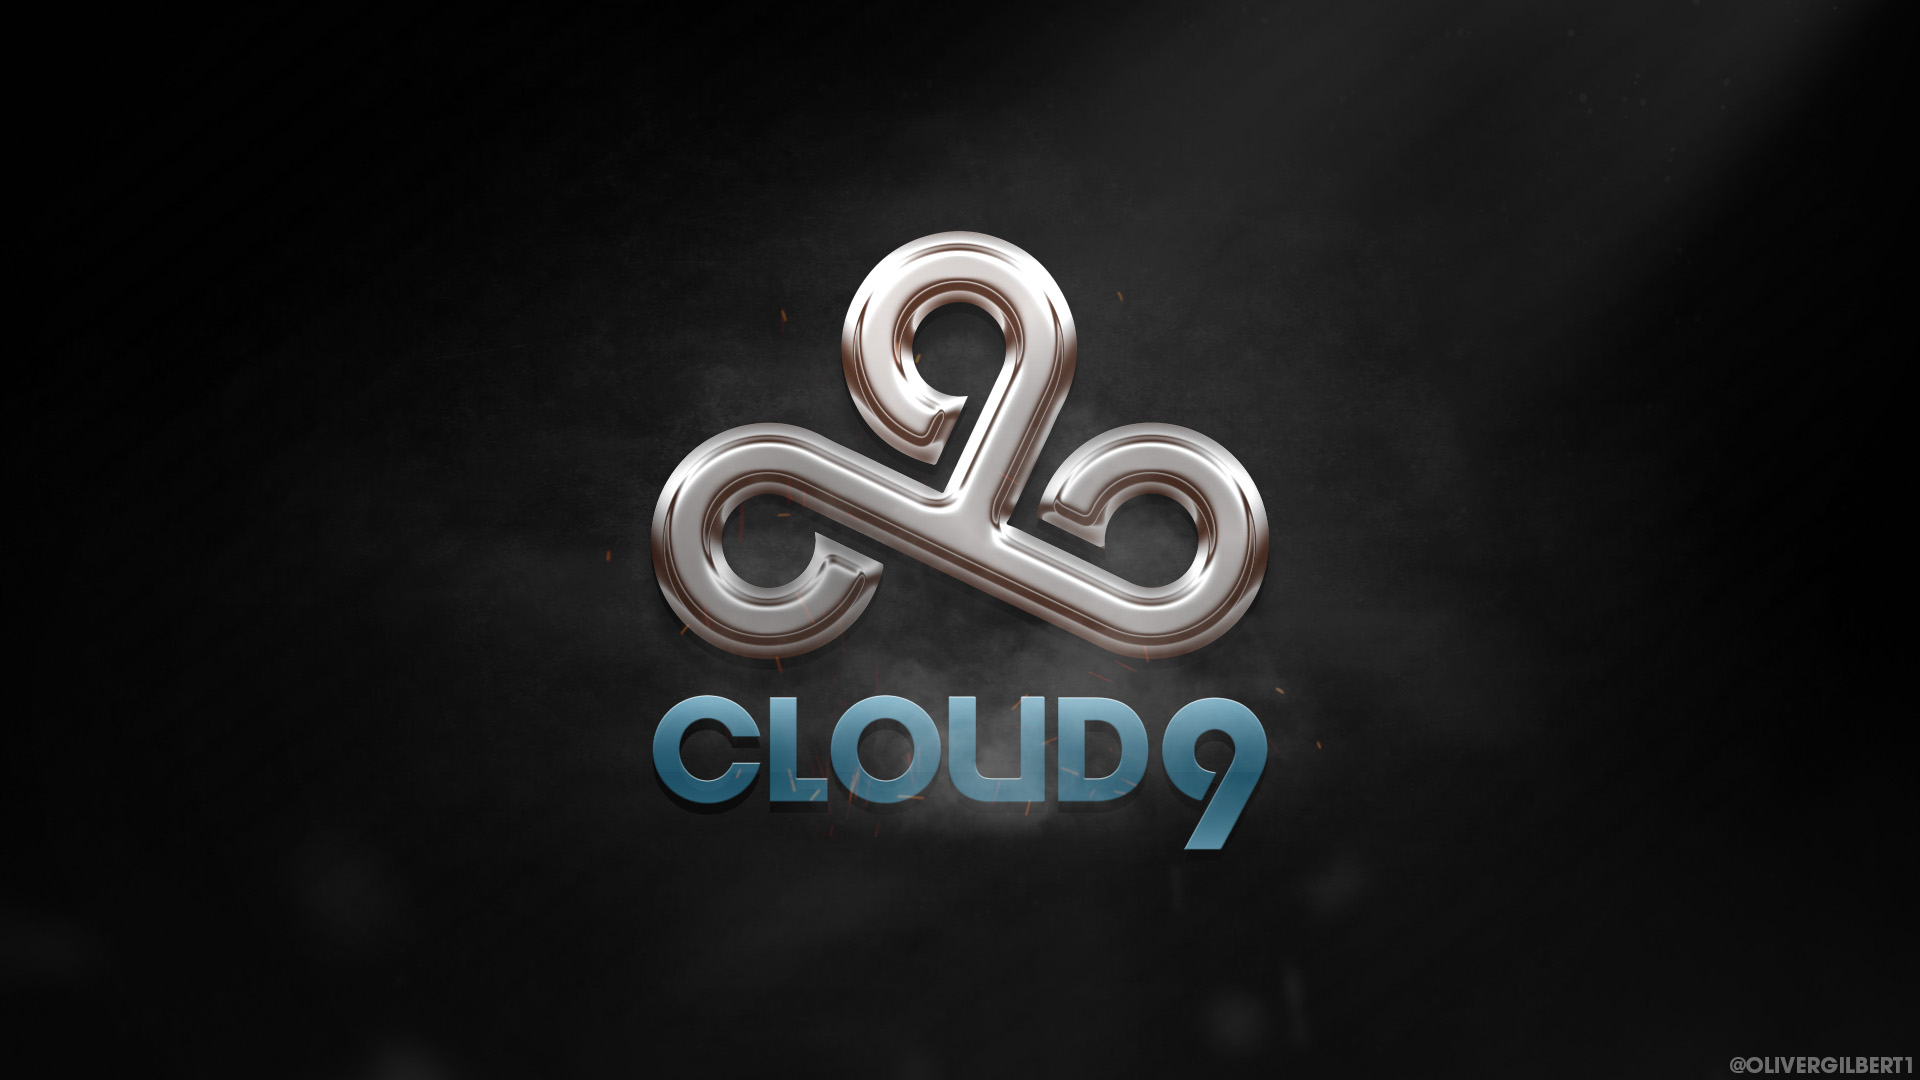 25 Cloud9 Wallpapers  BCGB  Gaming  Esports News  Blog